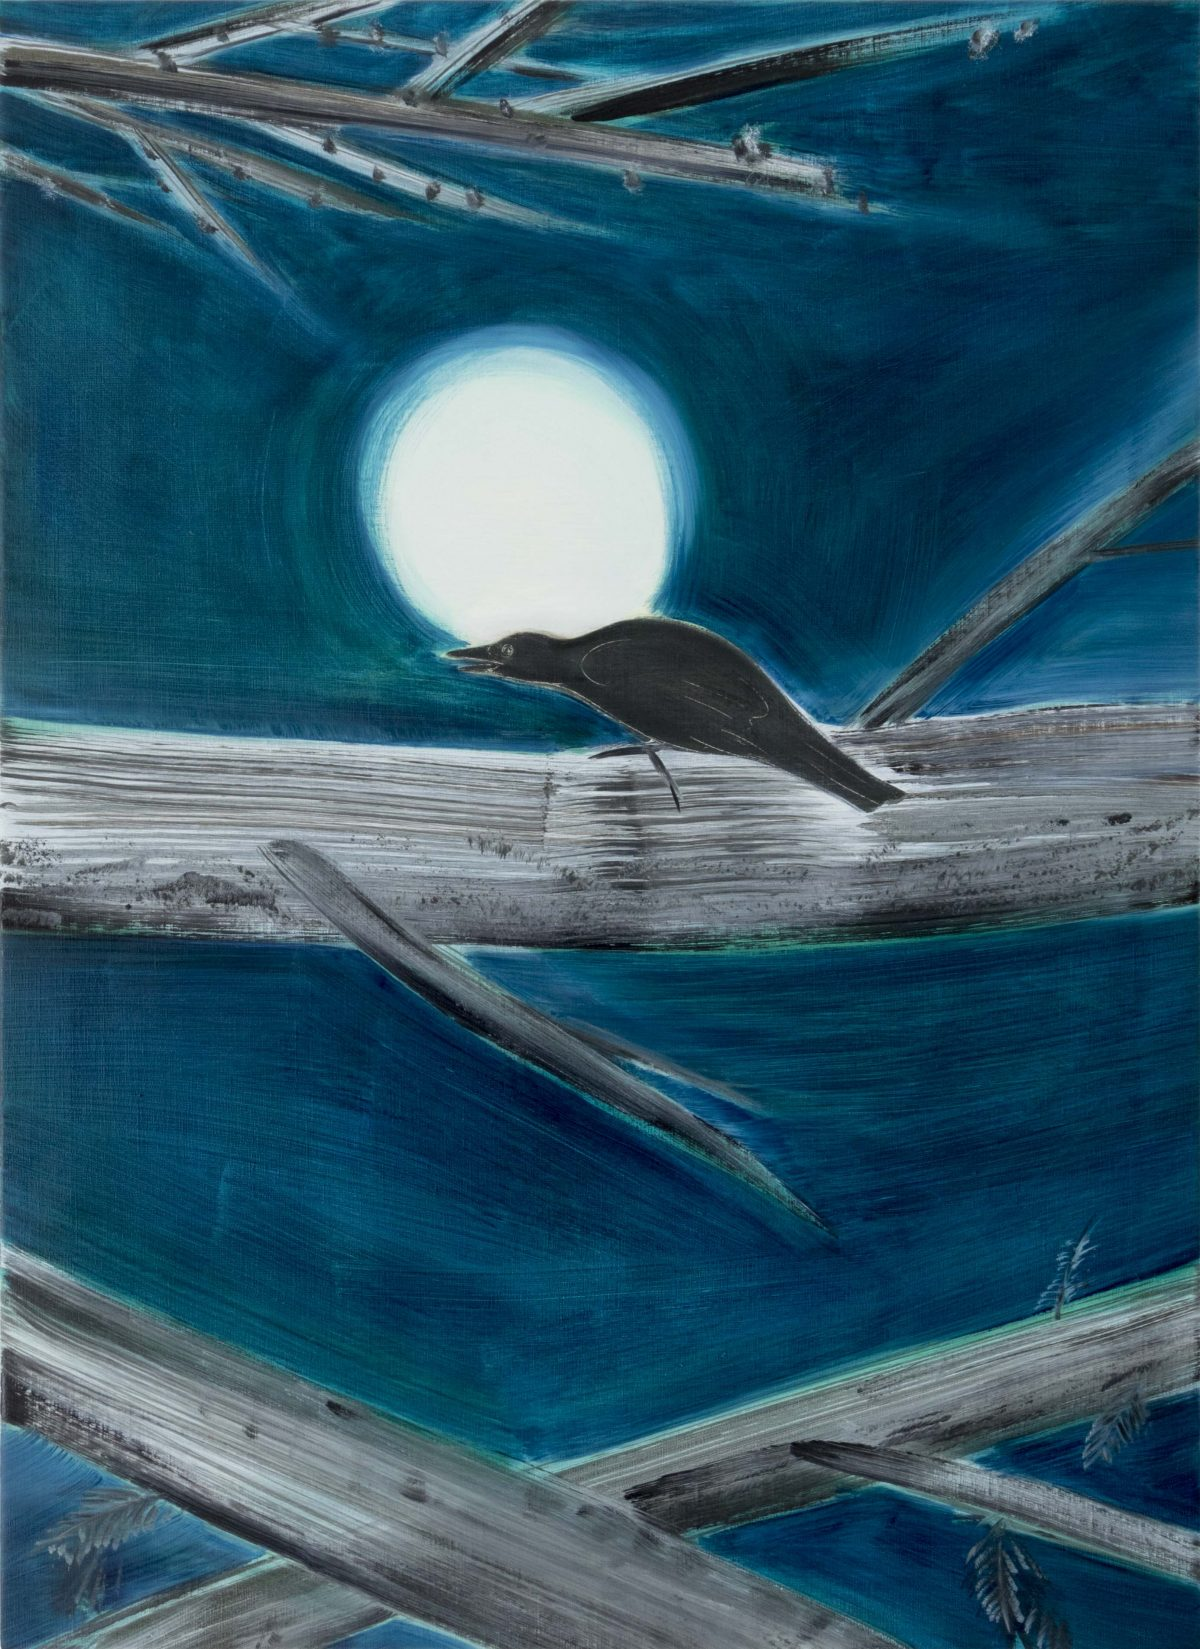 「The moon and a crow」<br /> 2020年 油彩、キャンバス 100×72.7cm